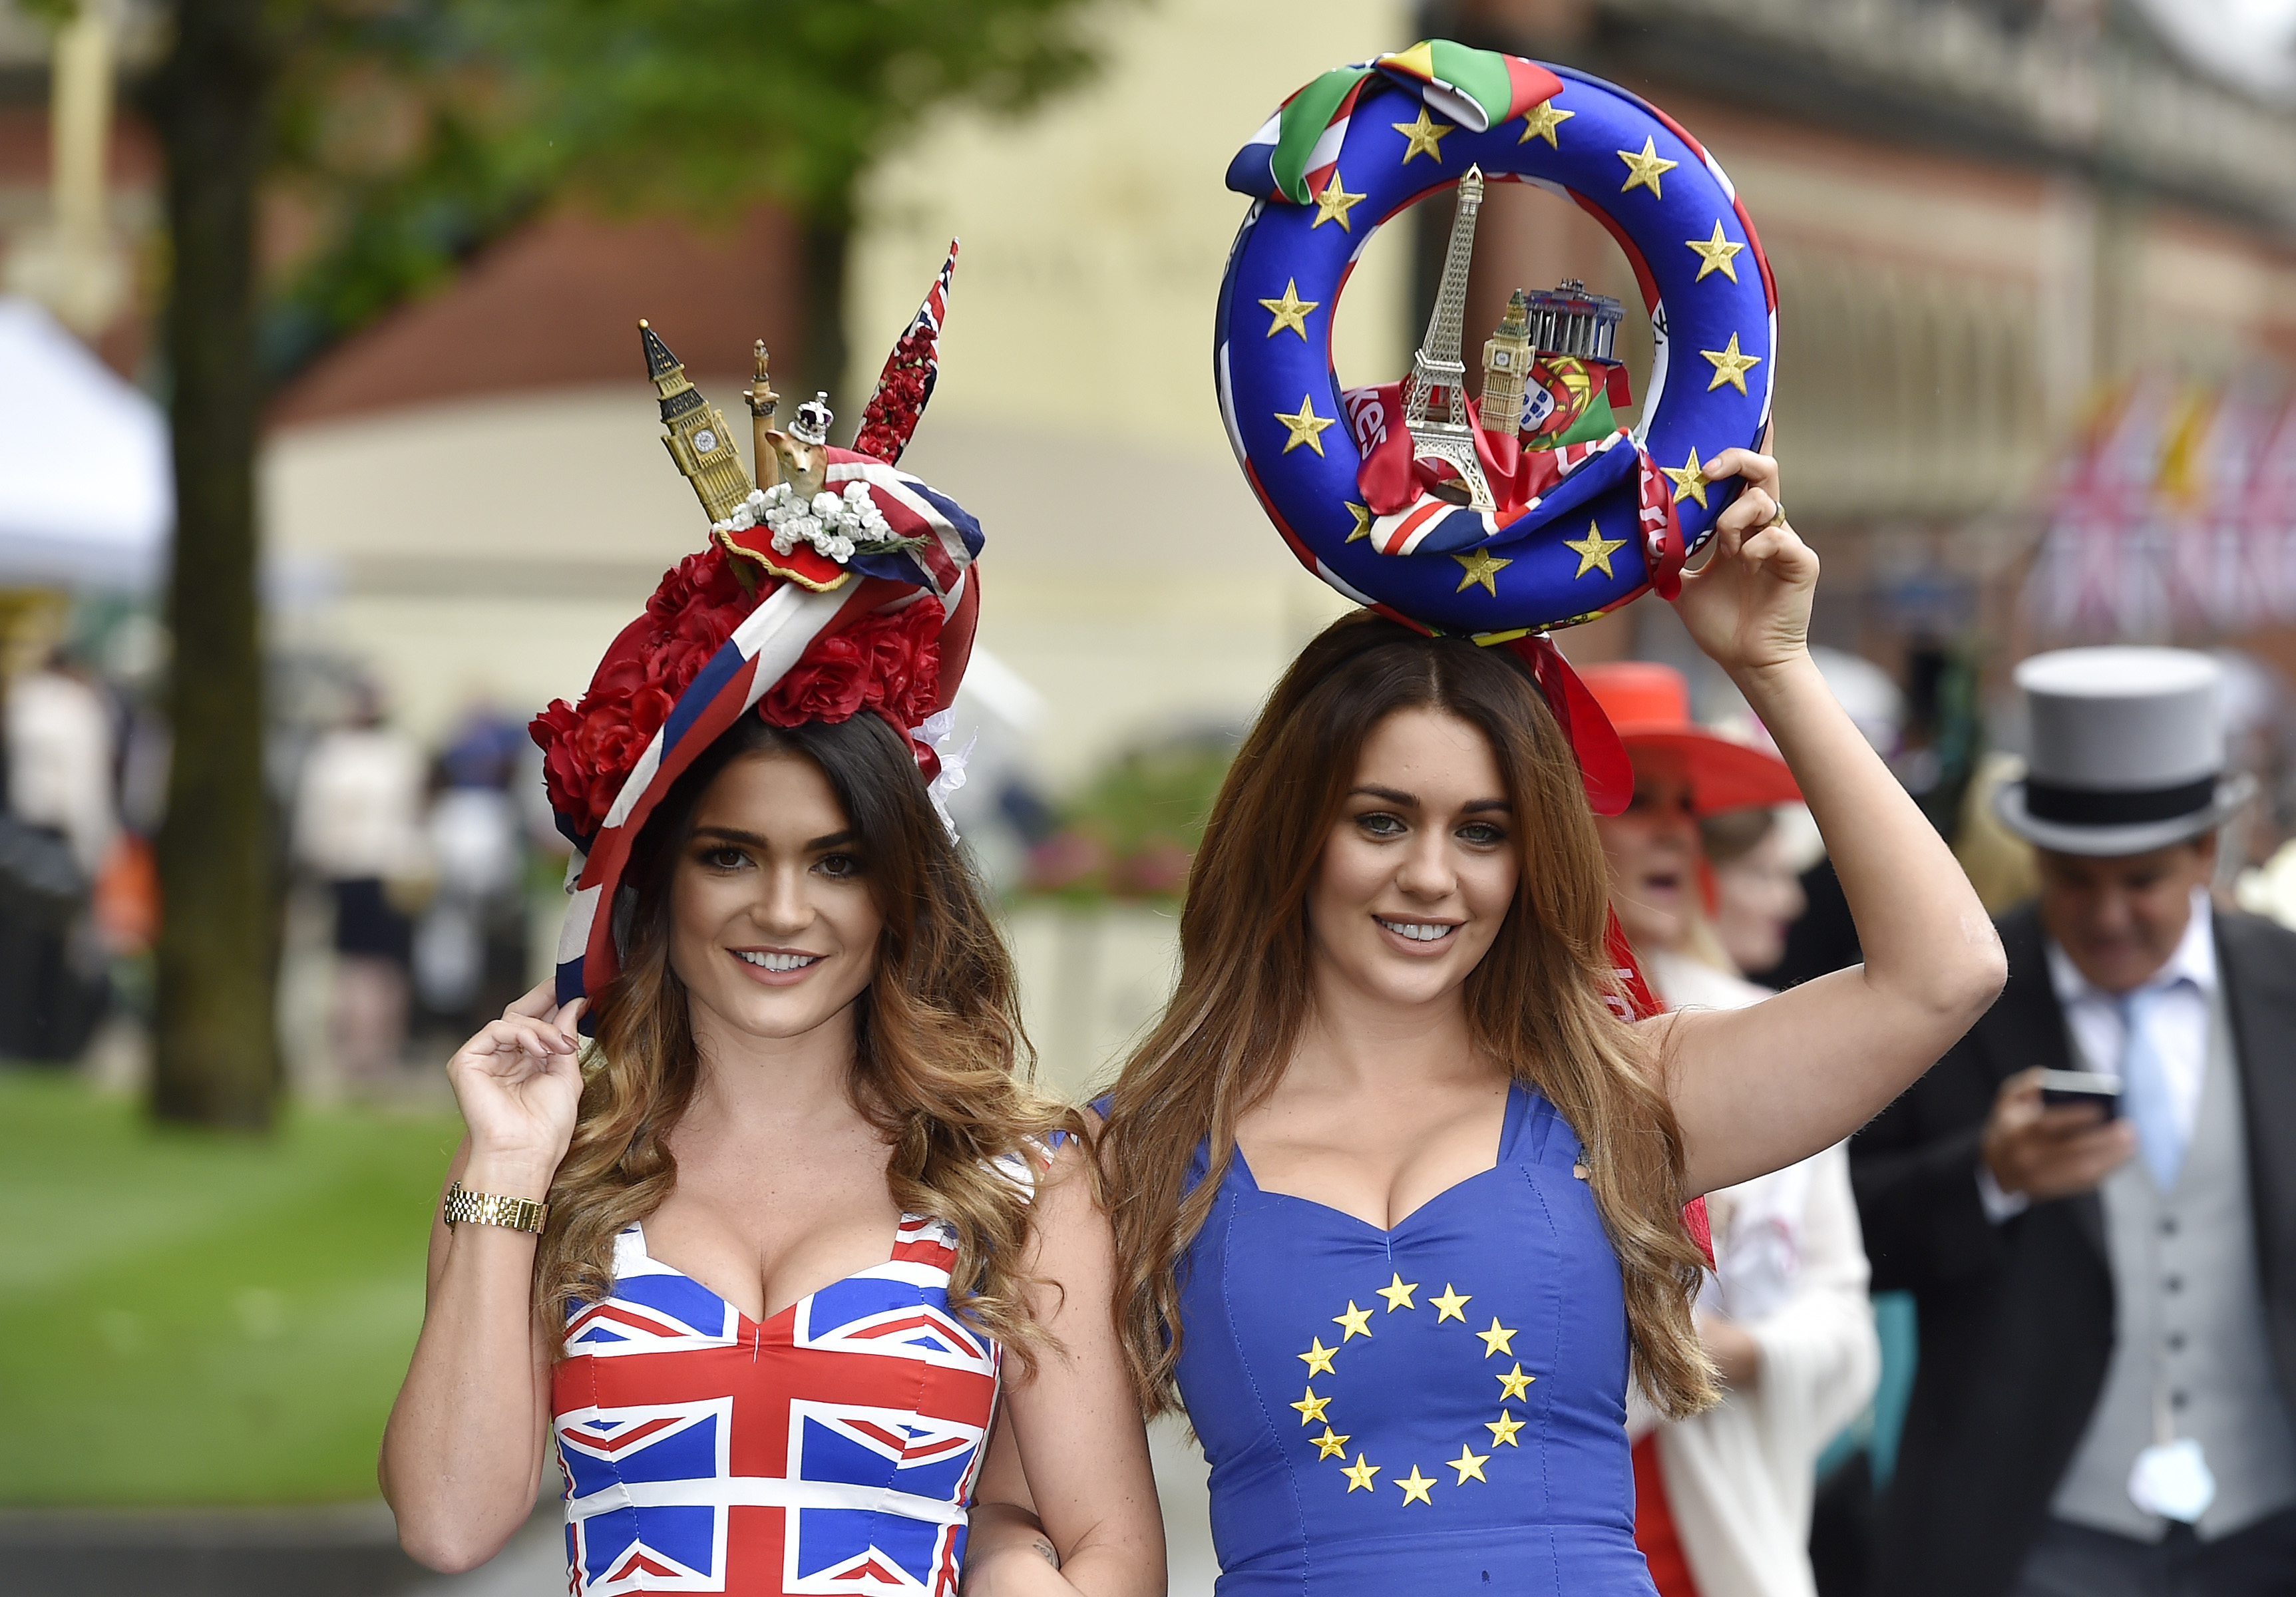 Britain Horse Racing - Royal Ascot - Ascot Racecourse - 14/6/16 Racegoers in Britain and EU referendum themed dresses Reuters / Toby Melville Livepic EDITORIAL USE ONLY. - RTX2G4SK